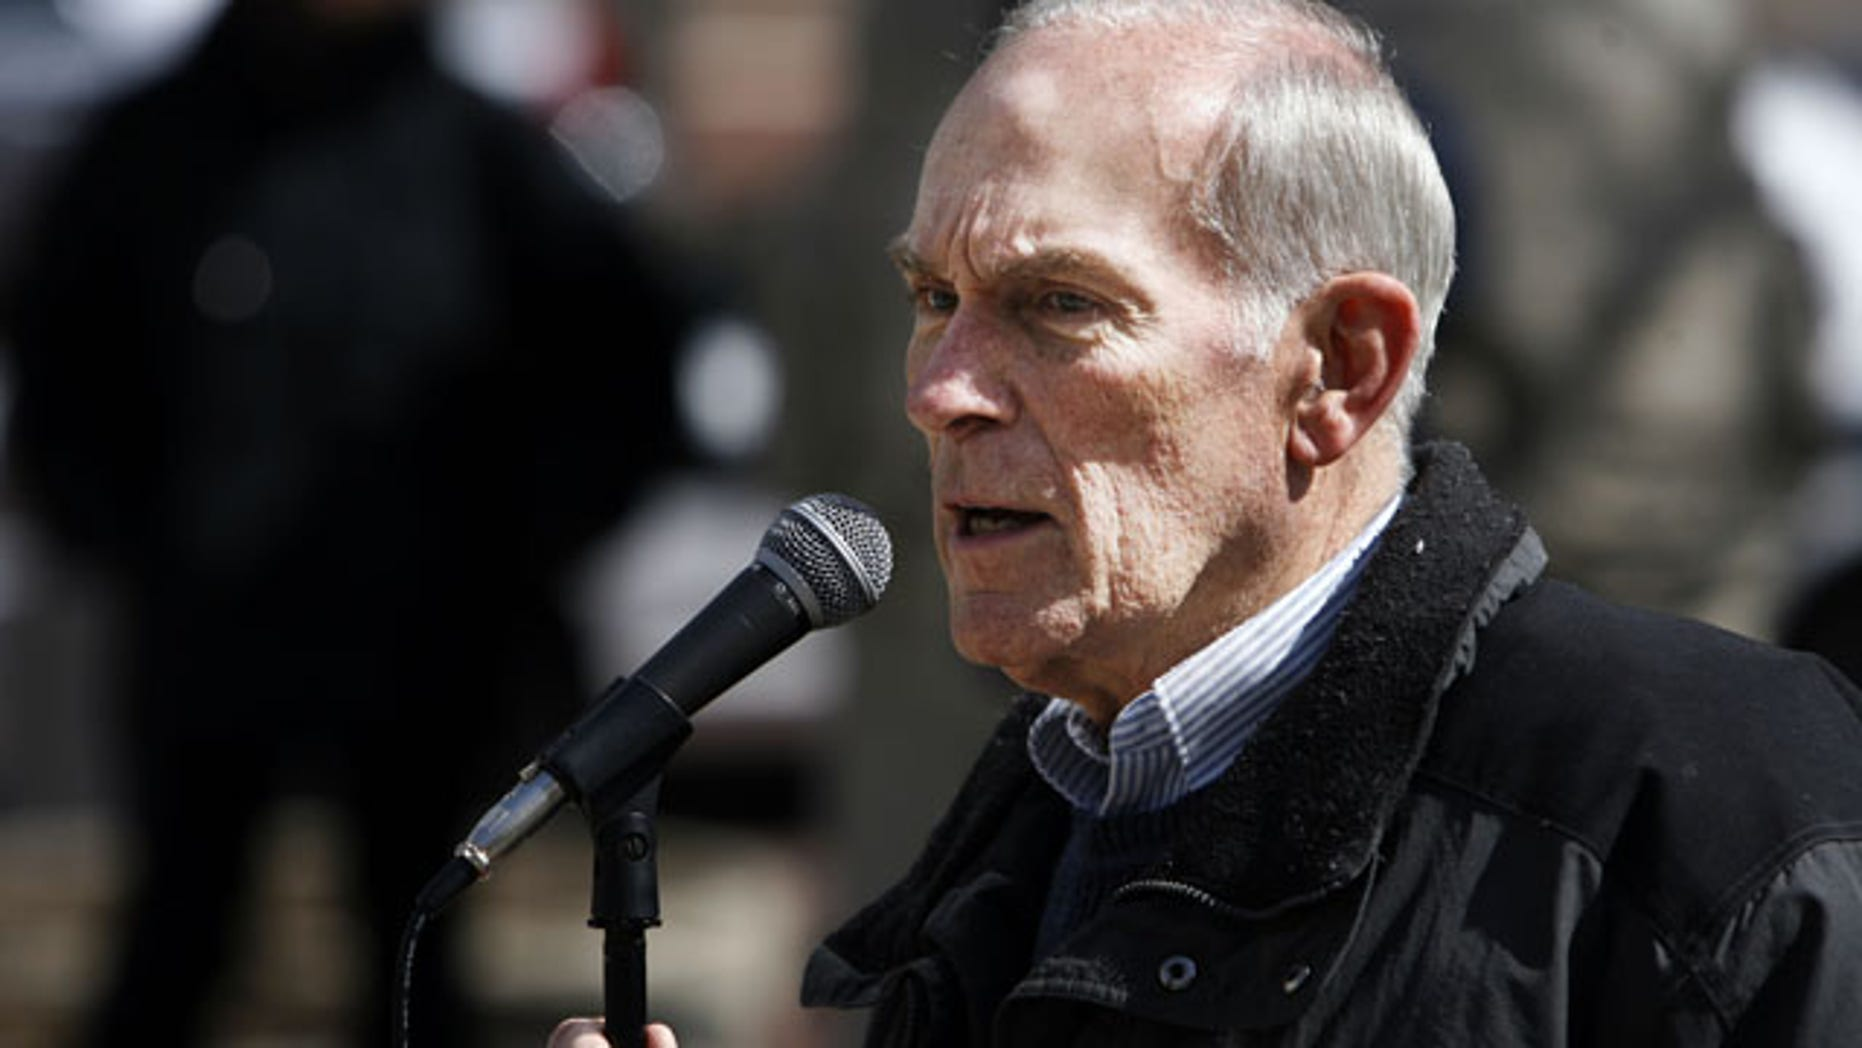 File-This March 29, 2008 file photo shows former Congressman Andy Jacobs, Jr., during the Peace Rally on Monument Circle. (AP Photo/Indianapolis Star)